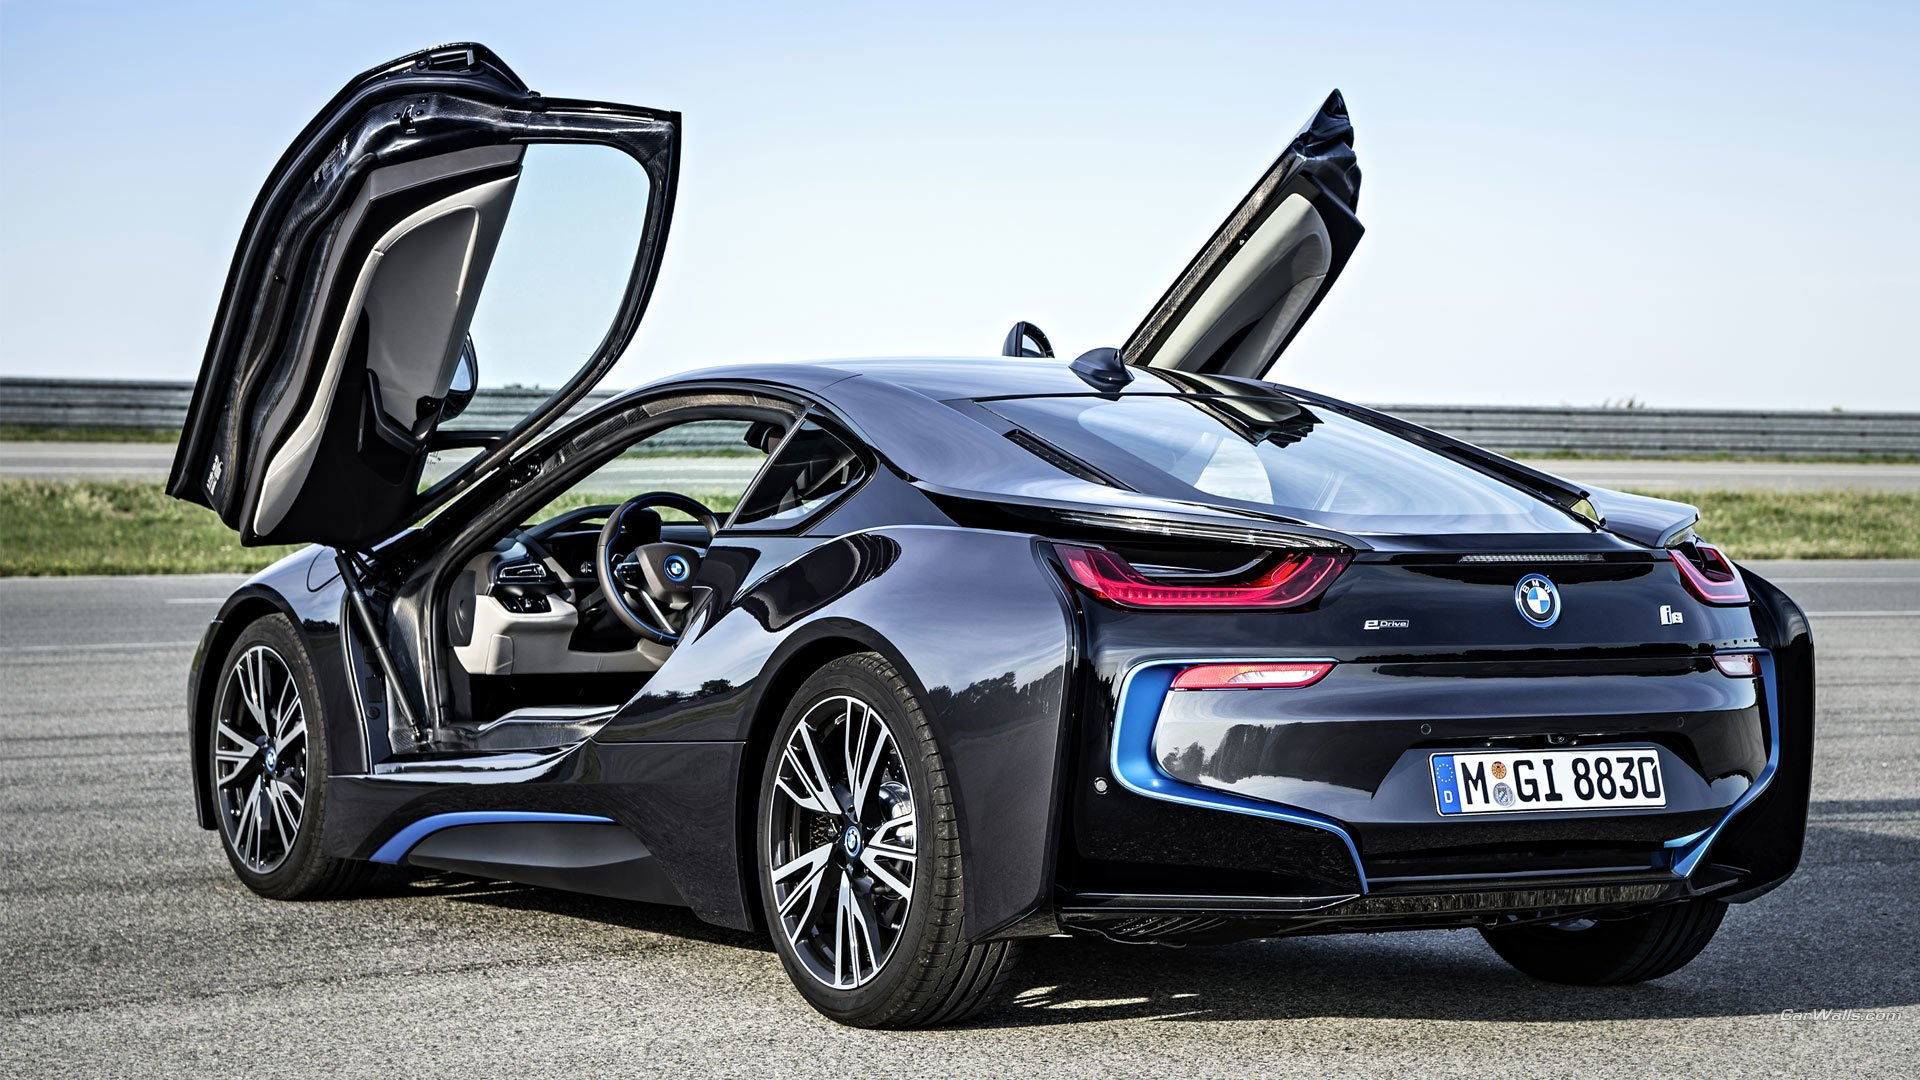 135 bmw i8 hd wallpapers | background images - wallpaper abyss